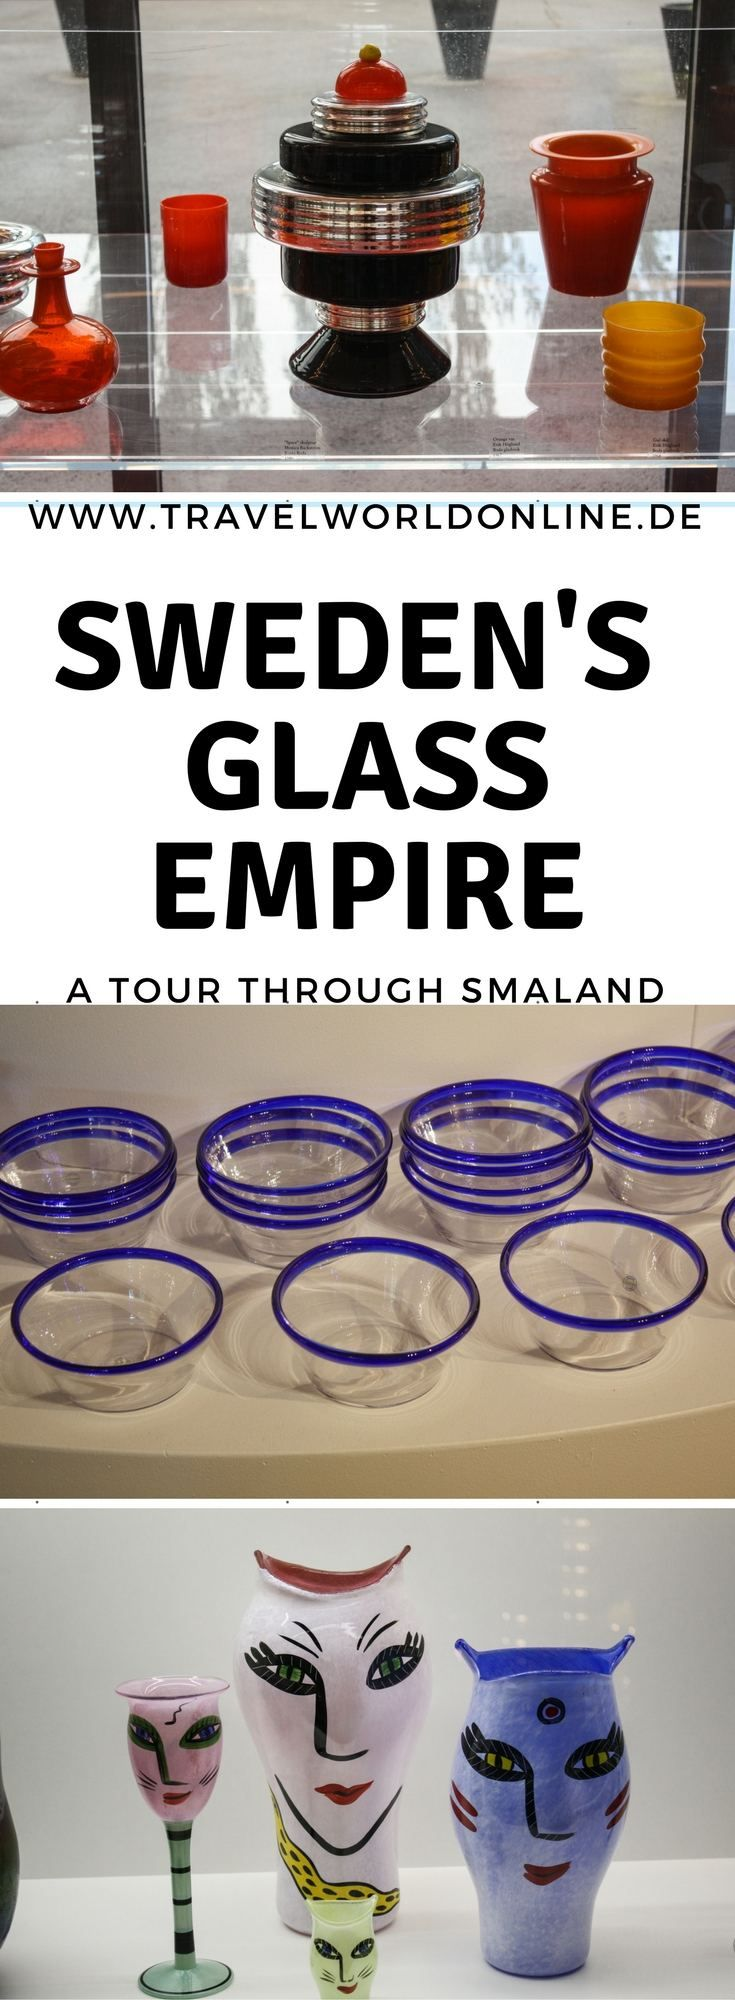 A Tour through Sweden's Glass Empire in Smaland takes you to very different glass manufacturers, who produce Sweden's famous glass - art as well as glasses for daily use.  #Sweden #glass #glassart #smaland #glasriket #glasses #manufacturers